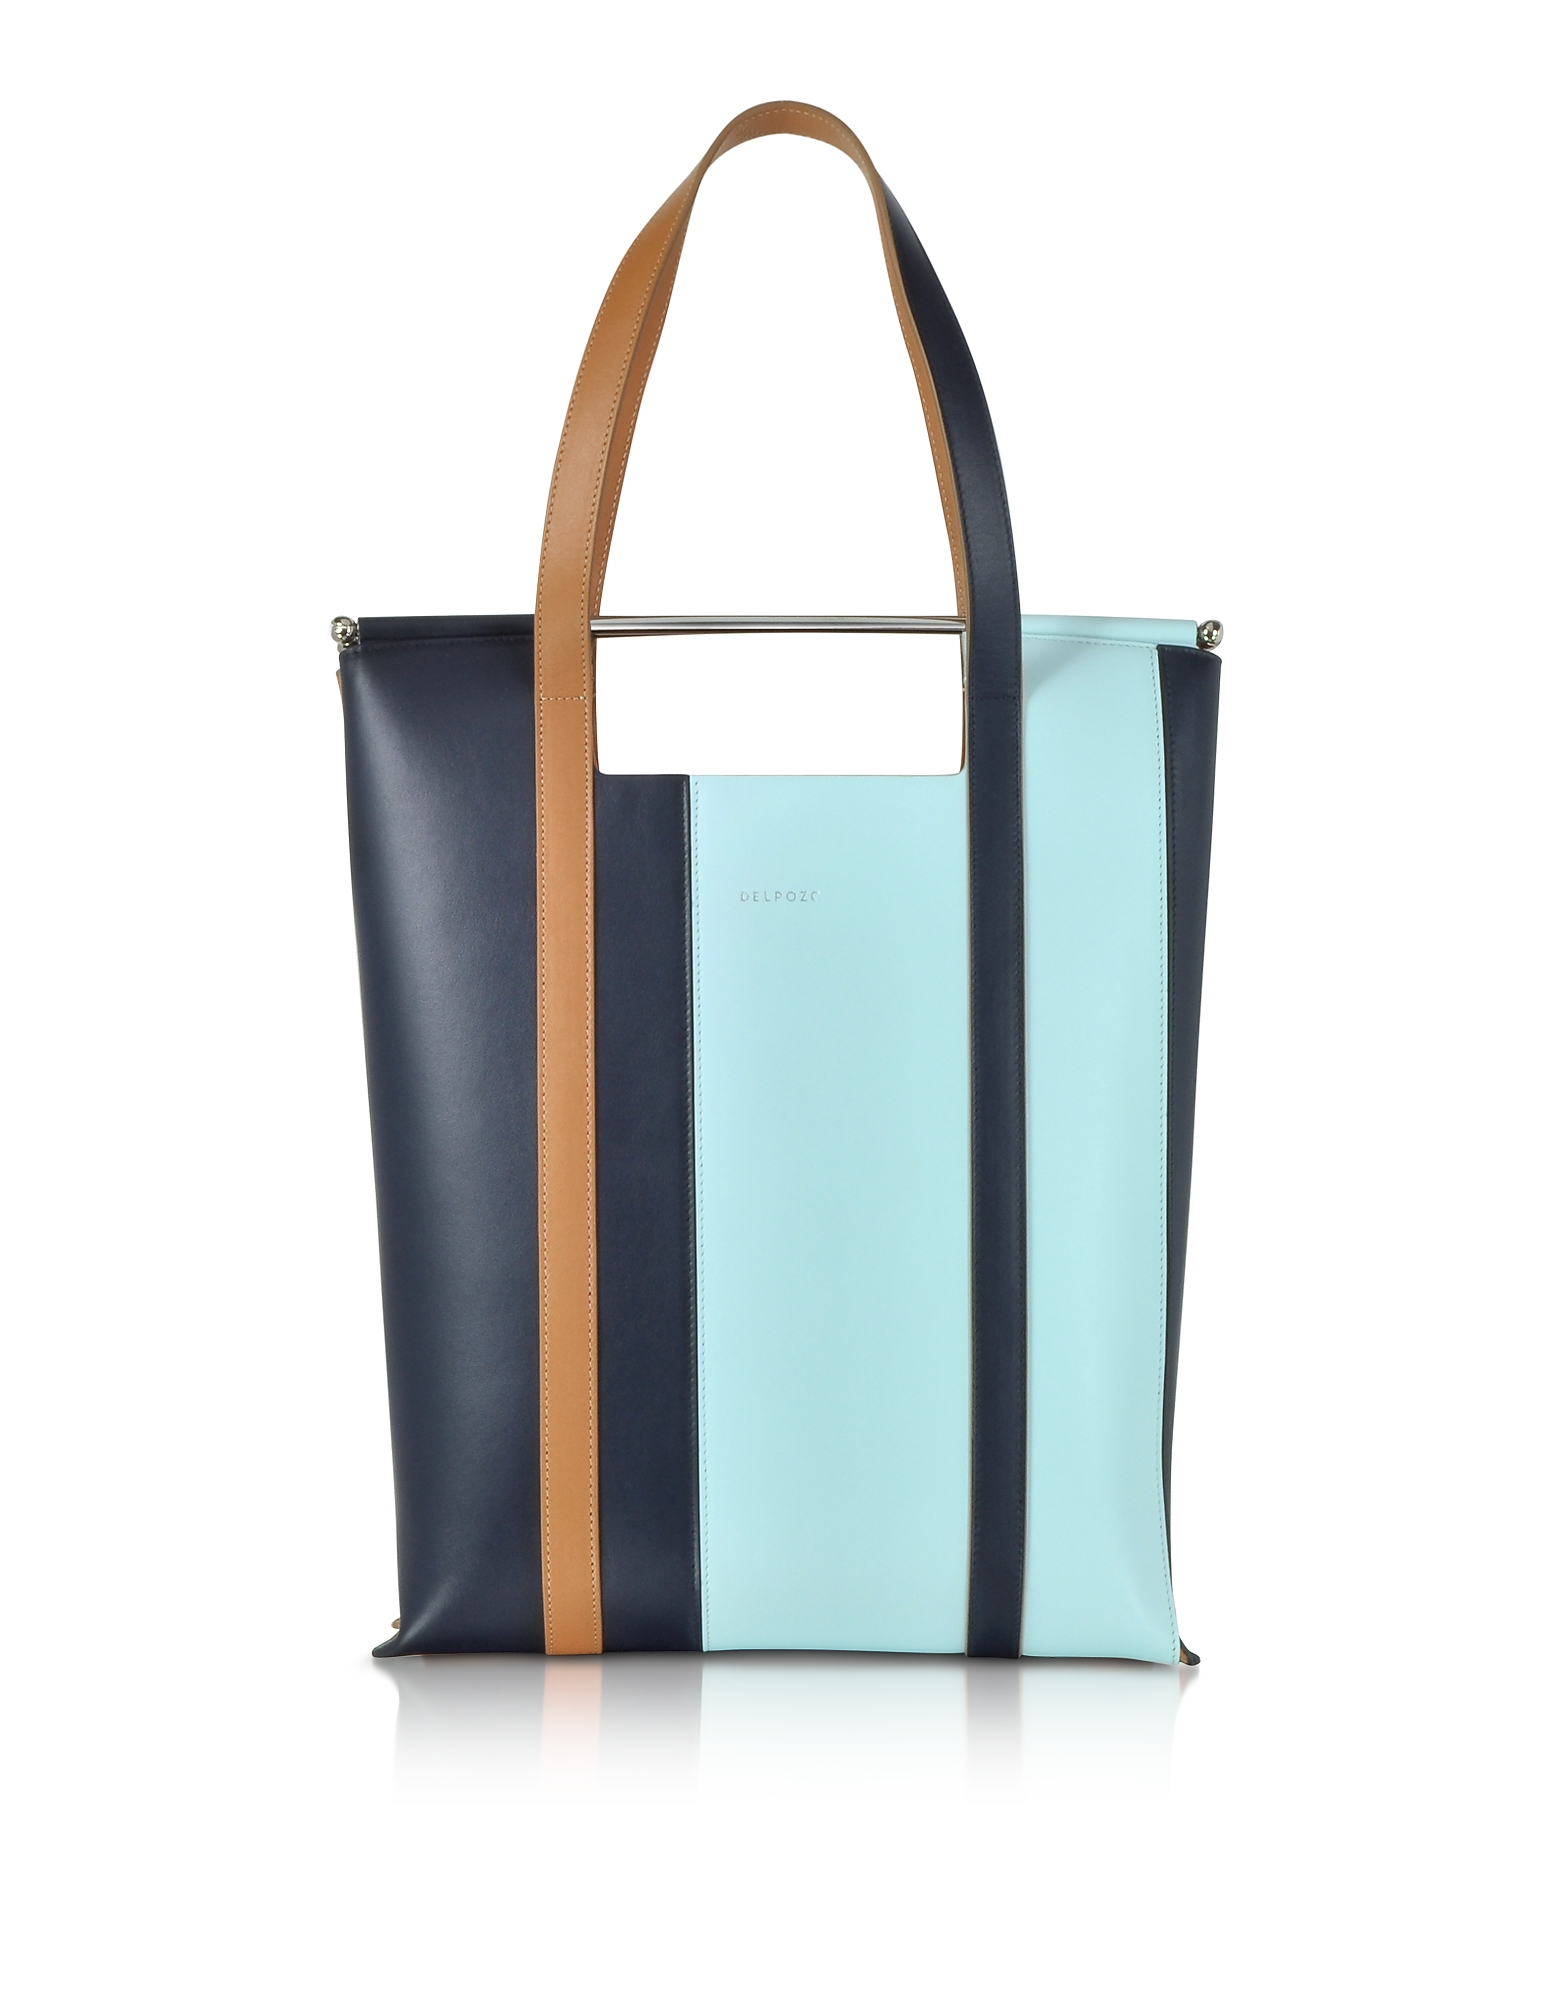 Image of Delpozo Designer Handbags, Vertical Striped Patent Leather and Calfskin Great Tote with Handles